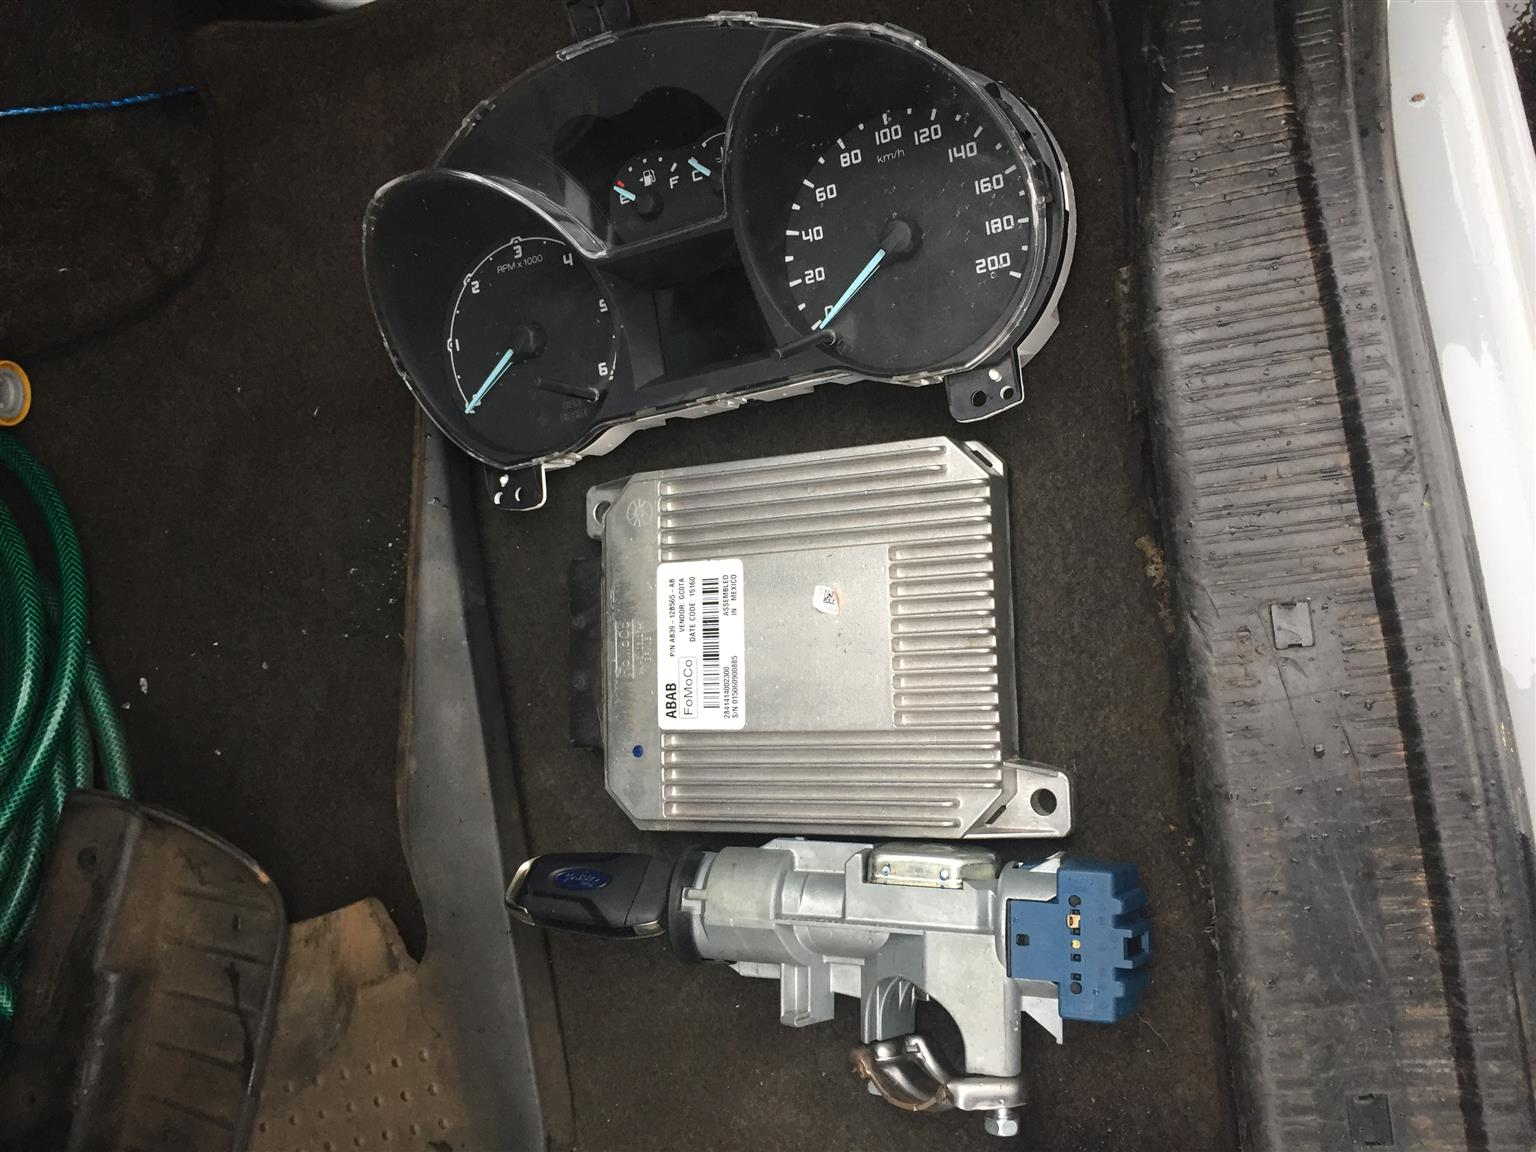 Toyota Quantum spares for sale